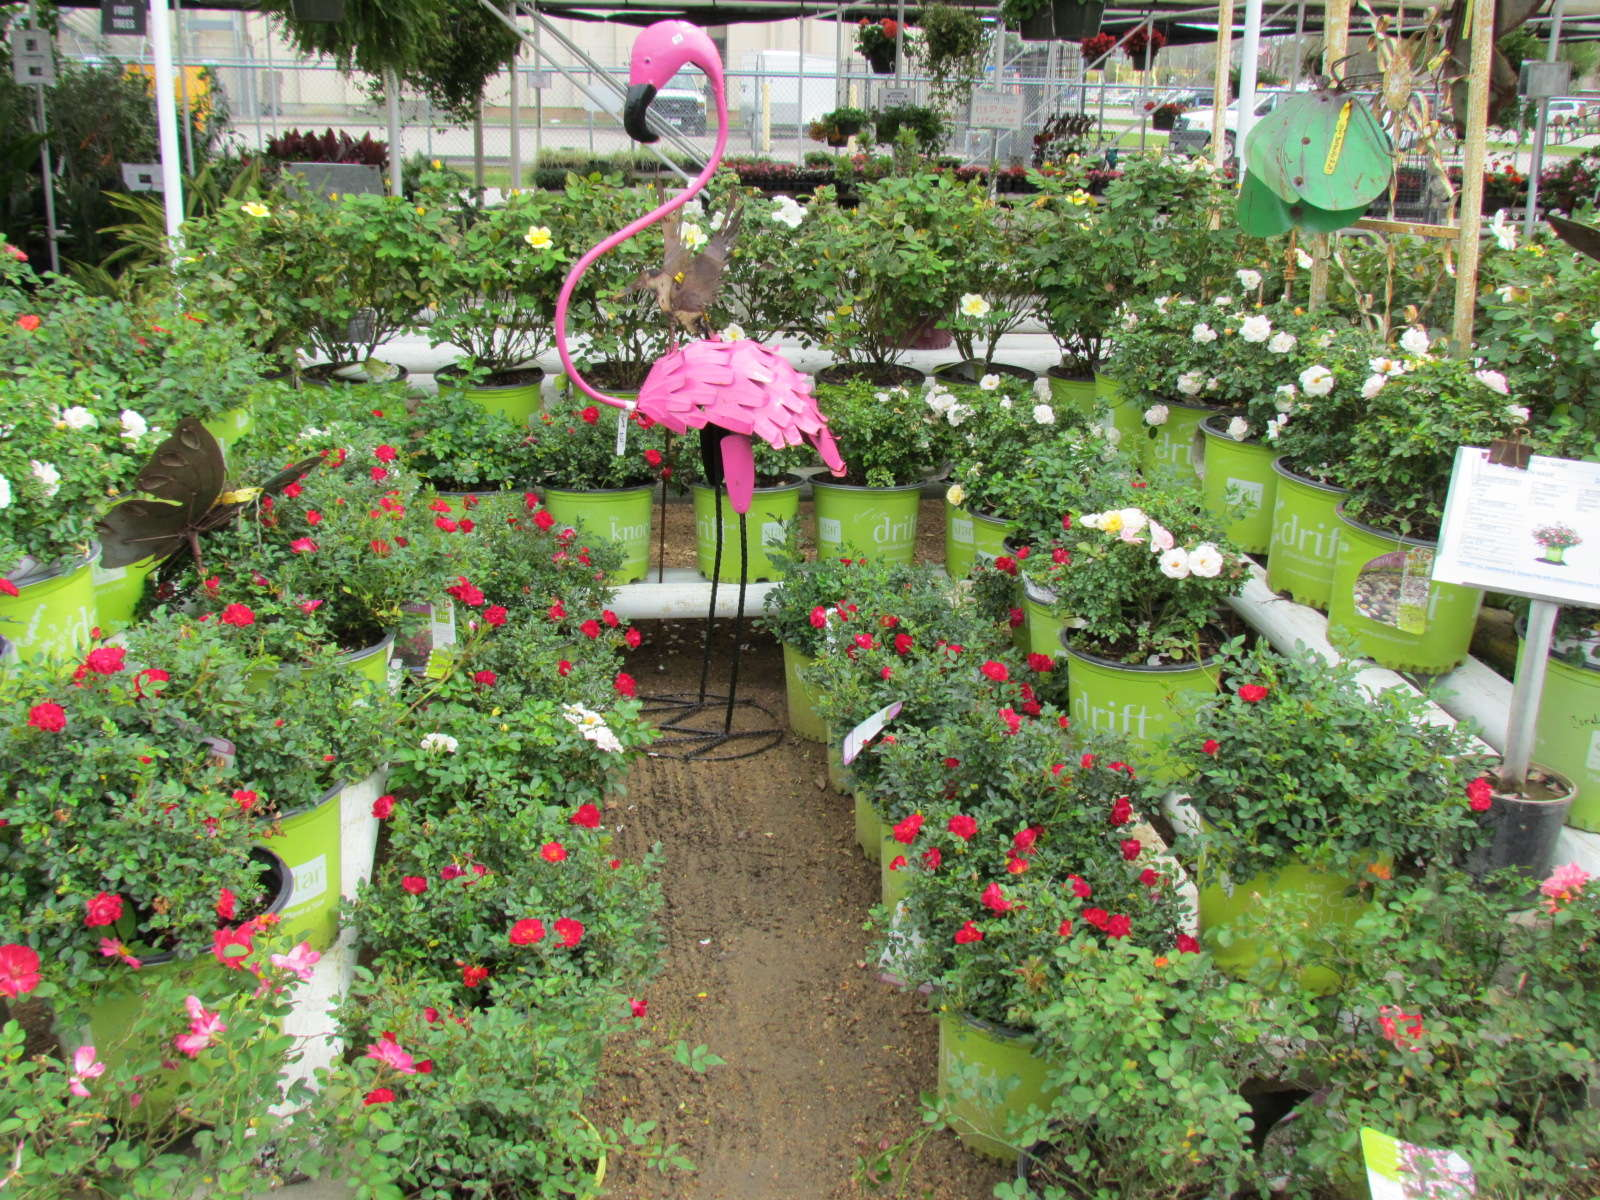 Large variety of shrubs including Encore Azaleas, Boxwoods, Yaupons, Crotons, Drift Roses and more at J&J Nursery, Spring, TX